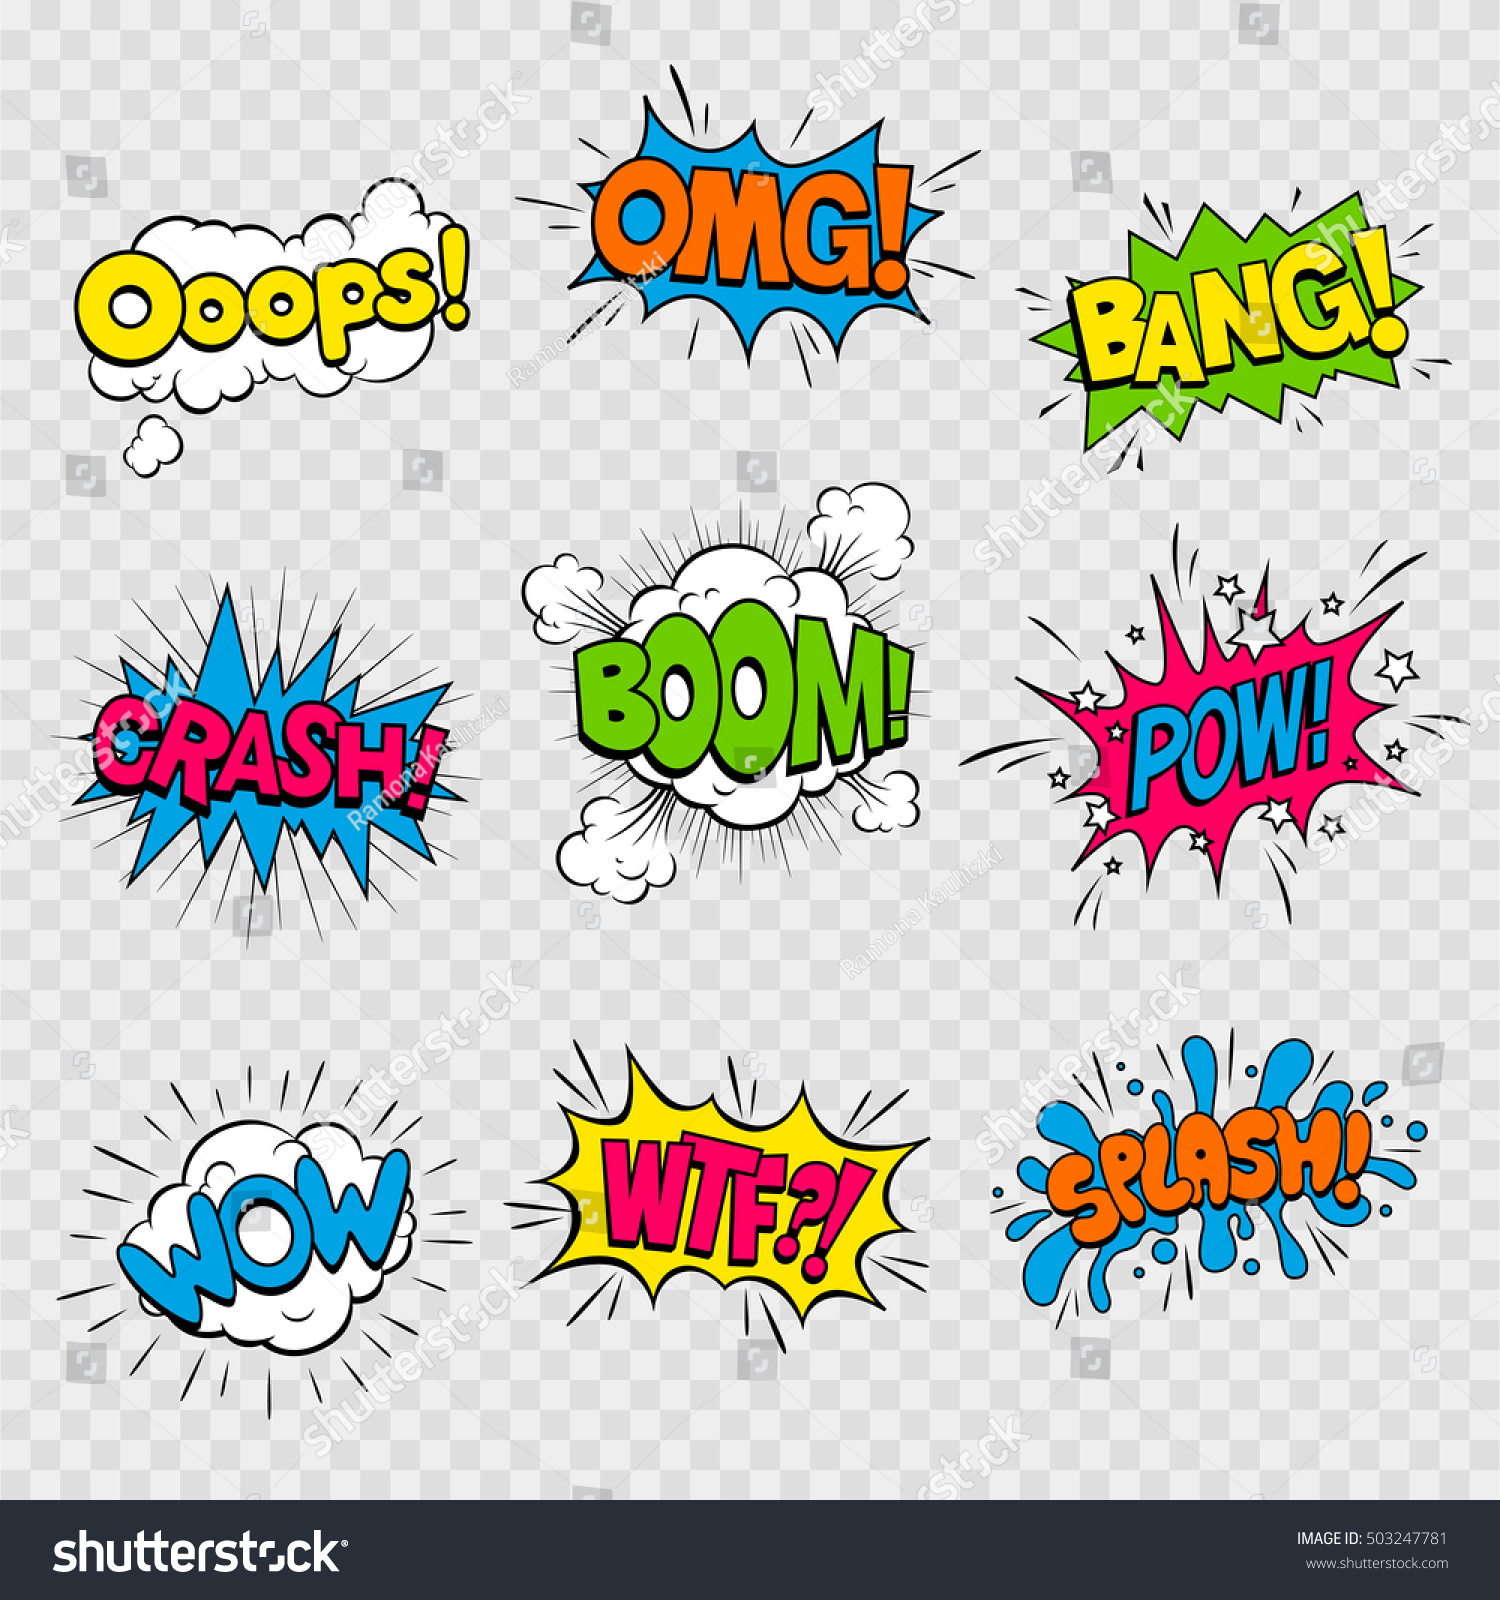 Vector Illustration Colorful Cartoon Sound Effects Stock Vector Royalty Free 503247781